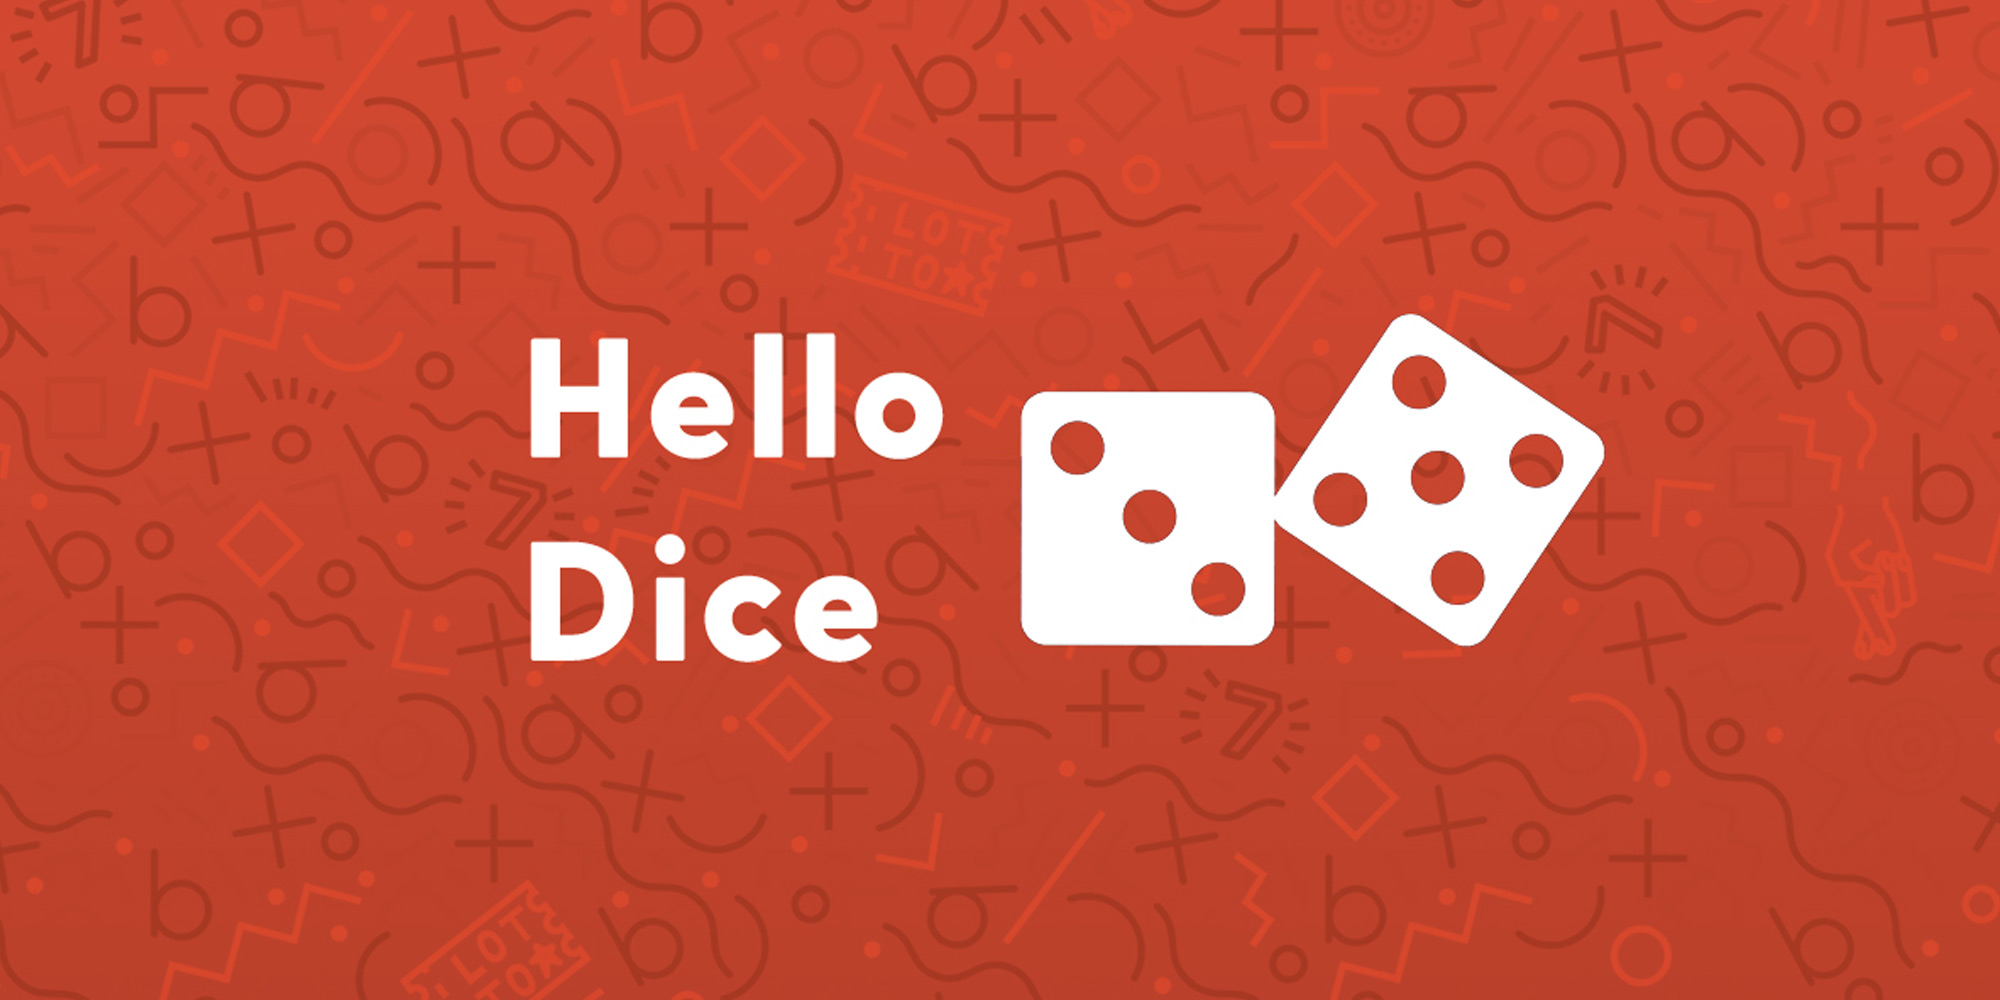 Dice Duel: How to play